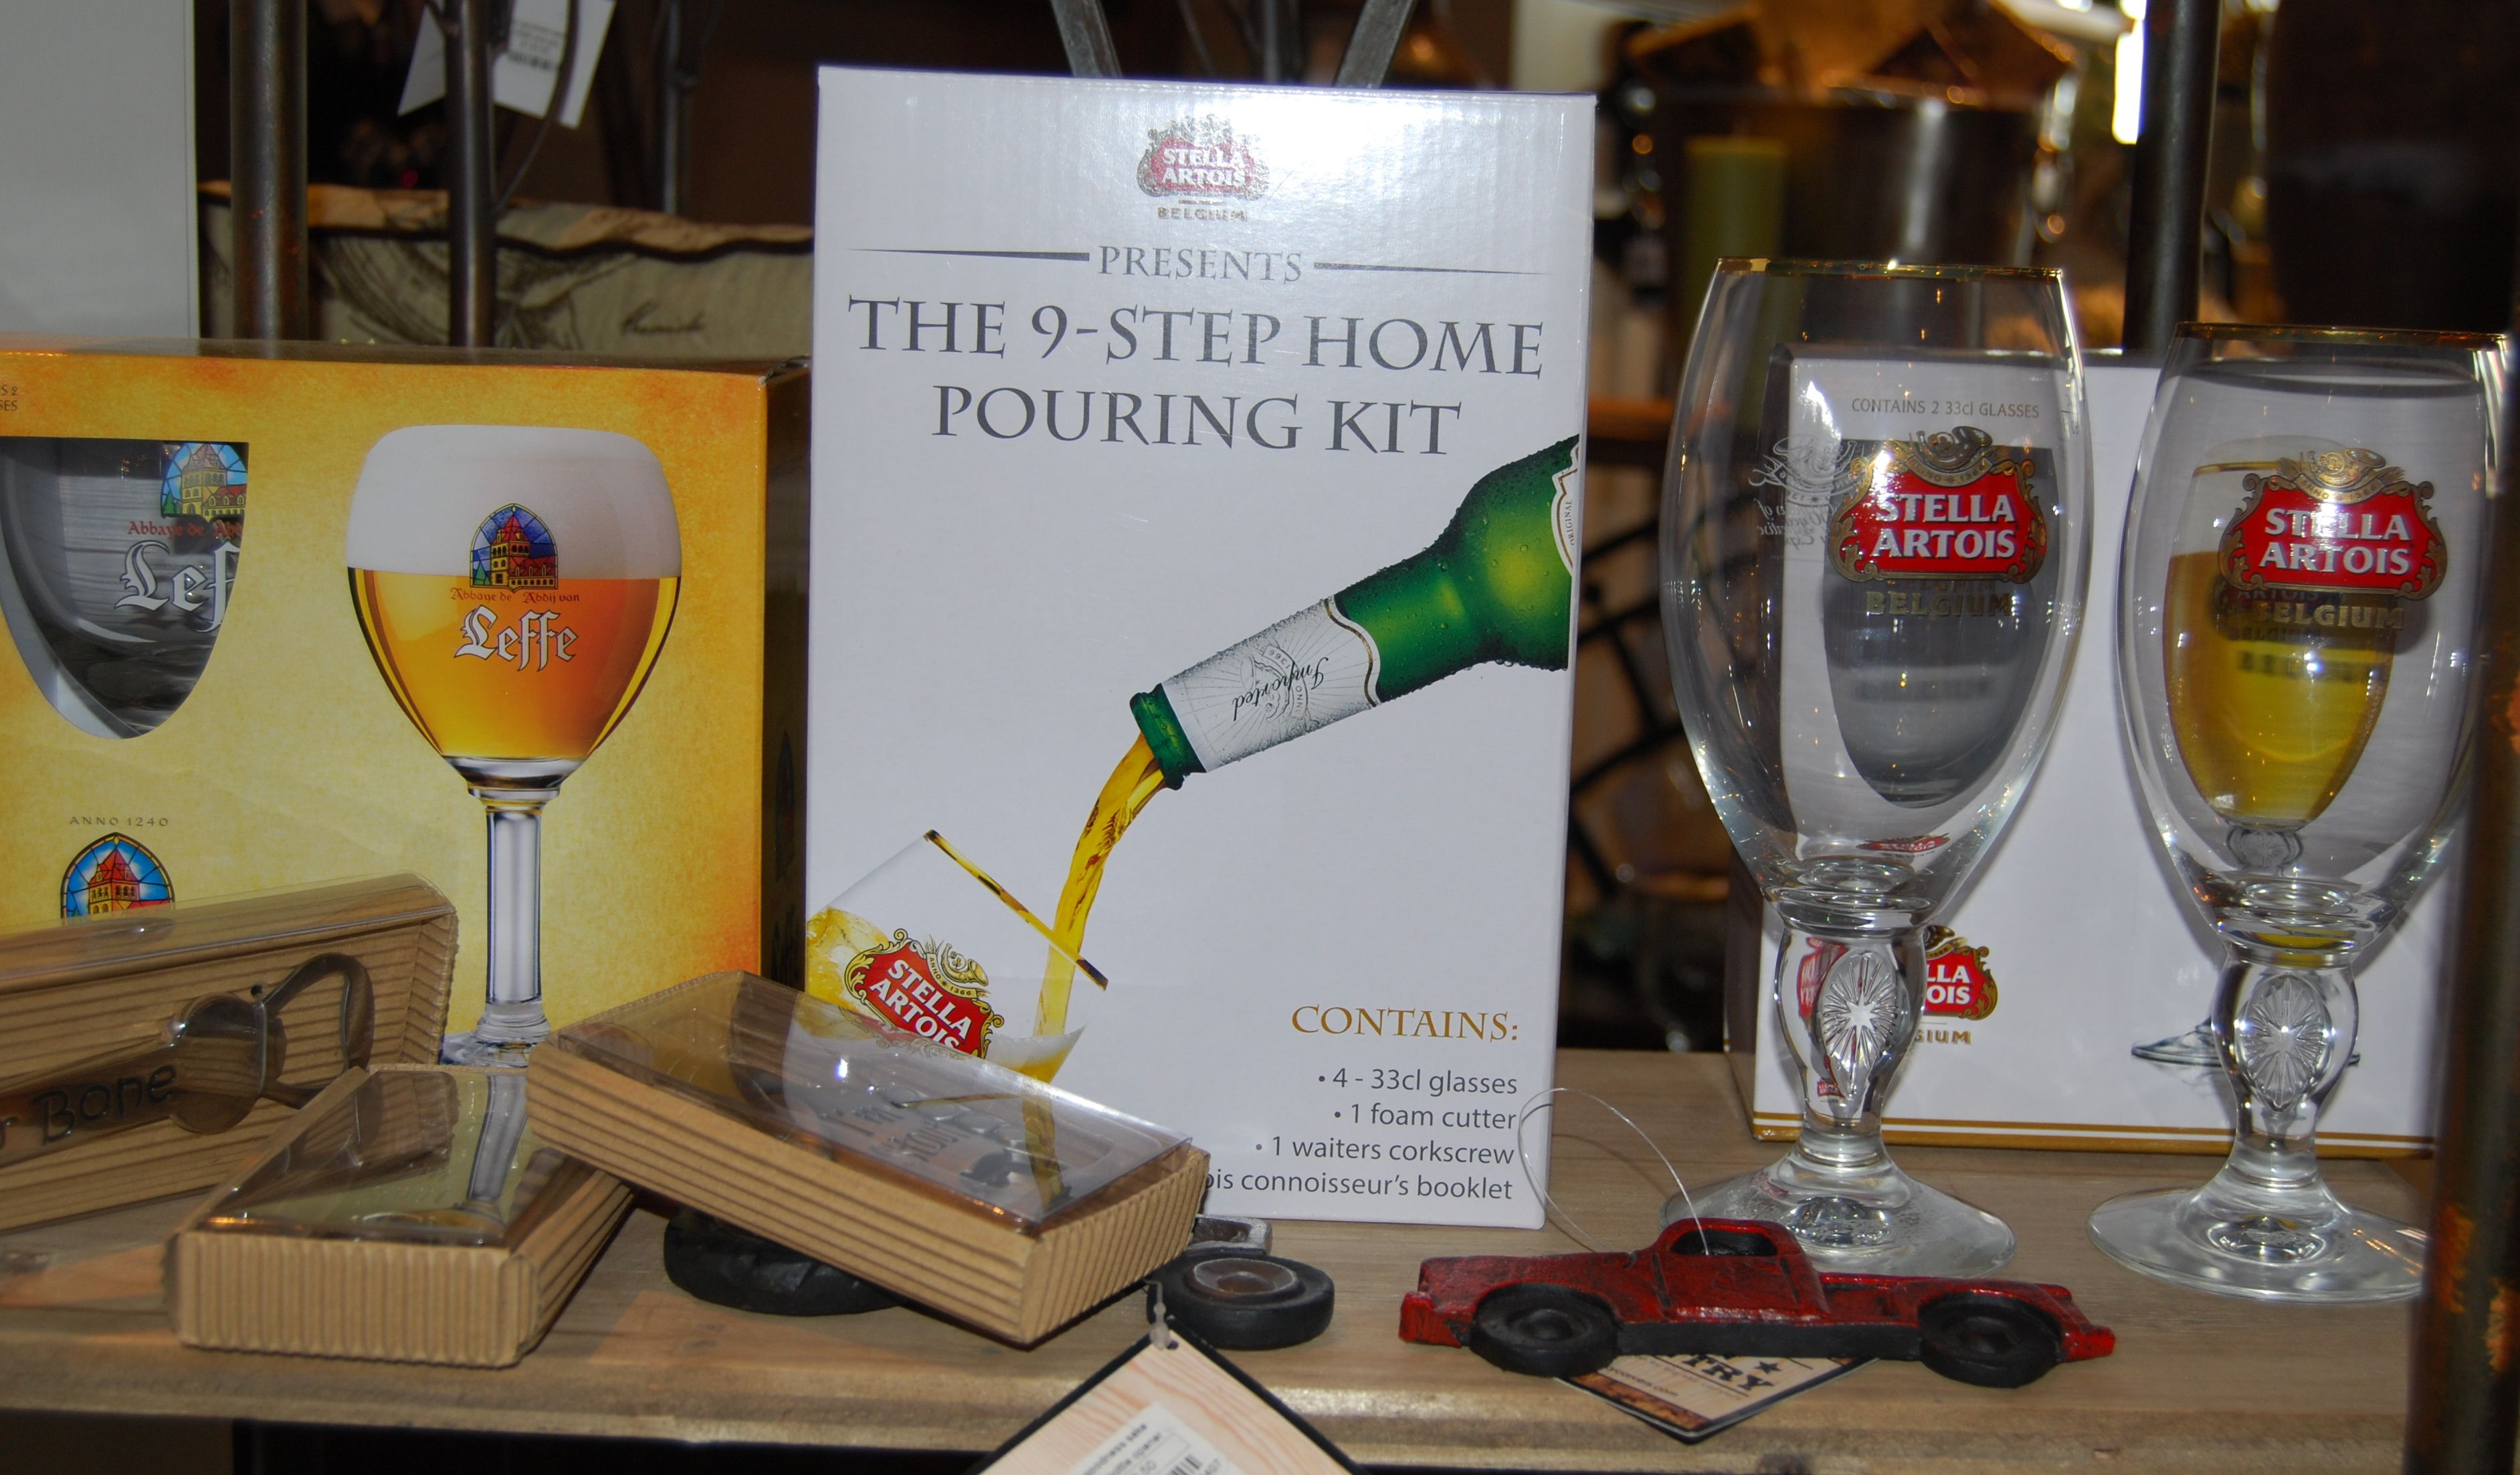 Stella Artois and Leffe glasses with accessories